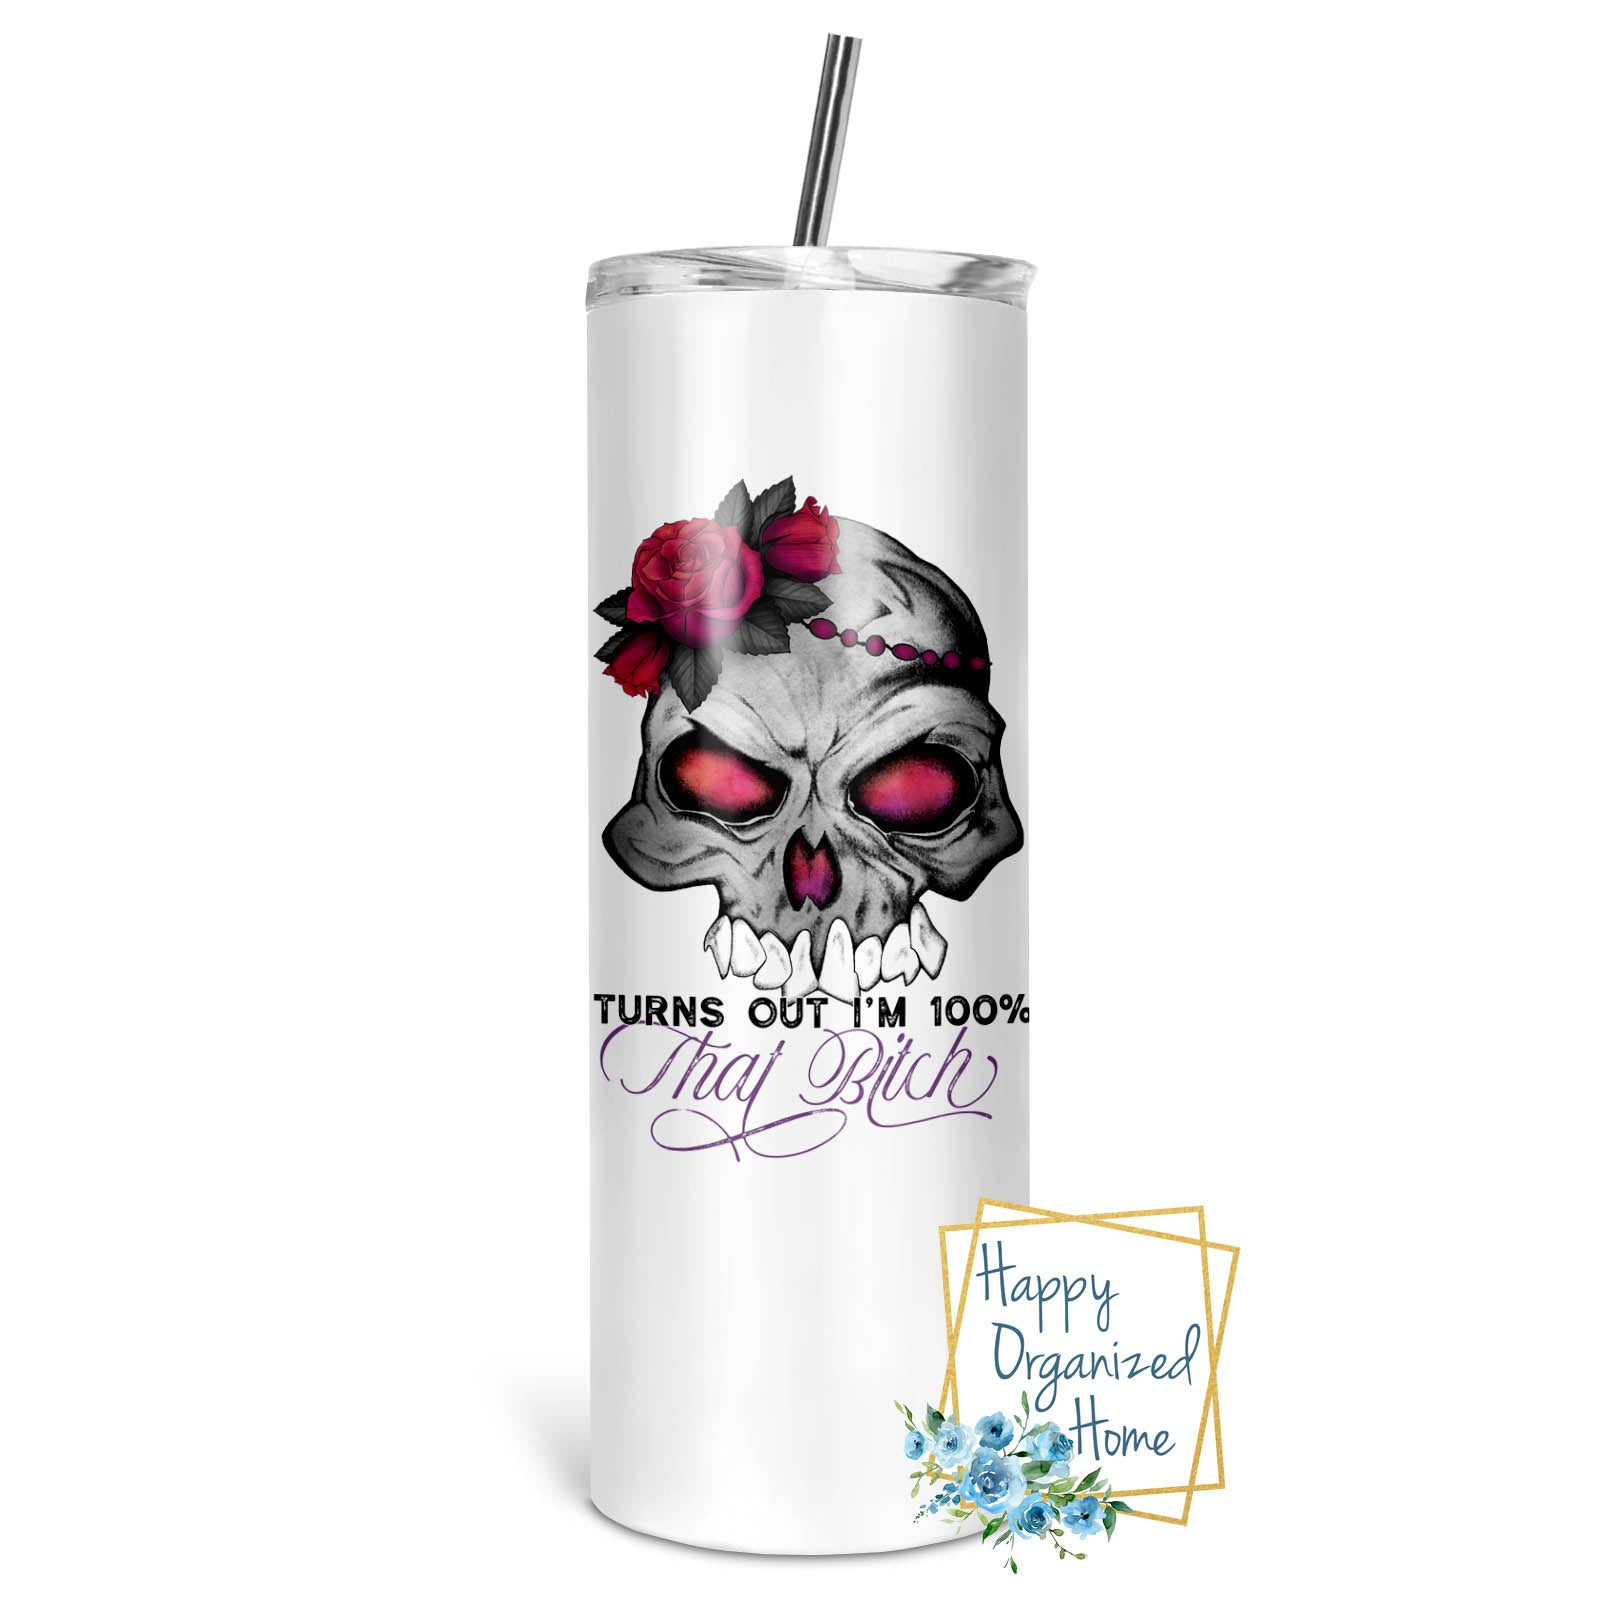 Turns out I am 100% that Bitch! - Insulated tumbler with metal straw